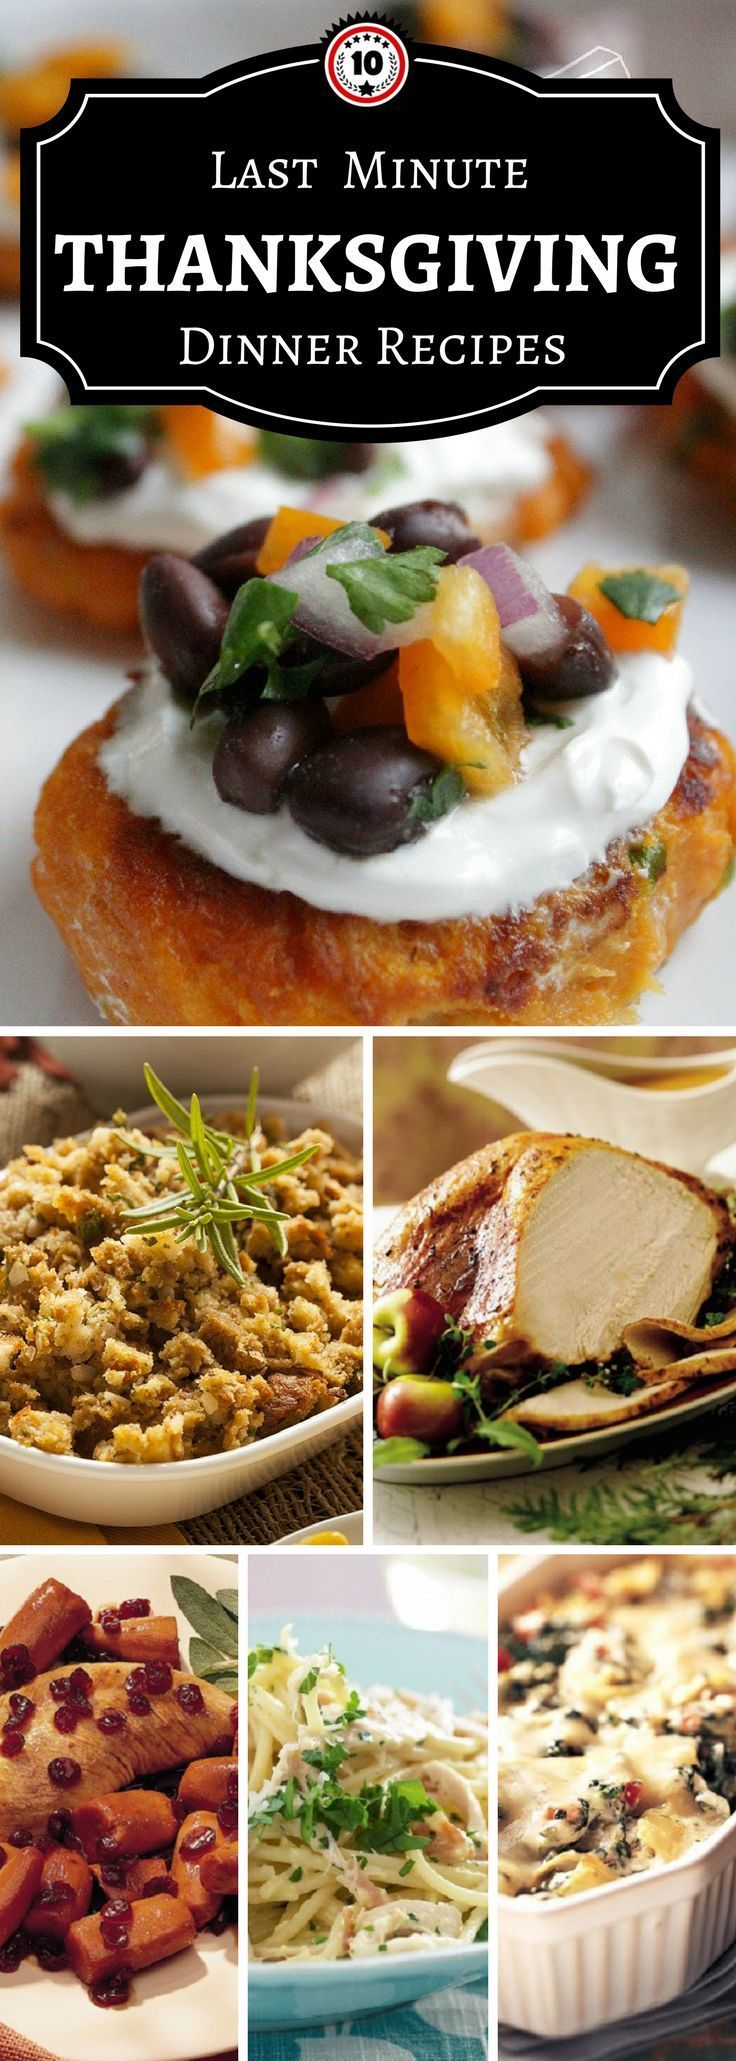 Top 10 Last Minute Thanksgiving Dinner Recipes - Top Inspired #thanksgivingdinnertable